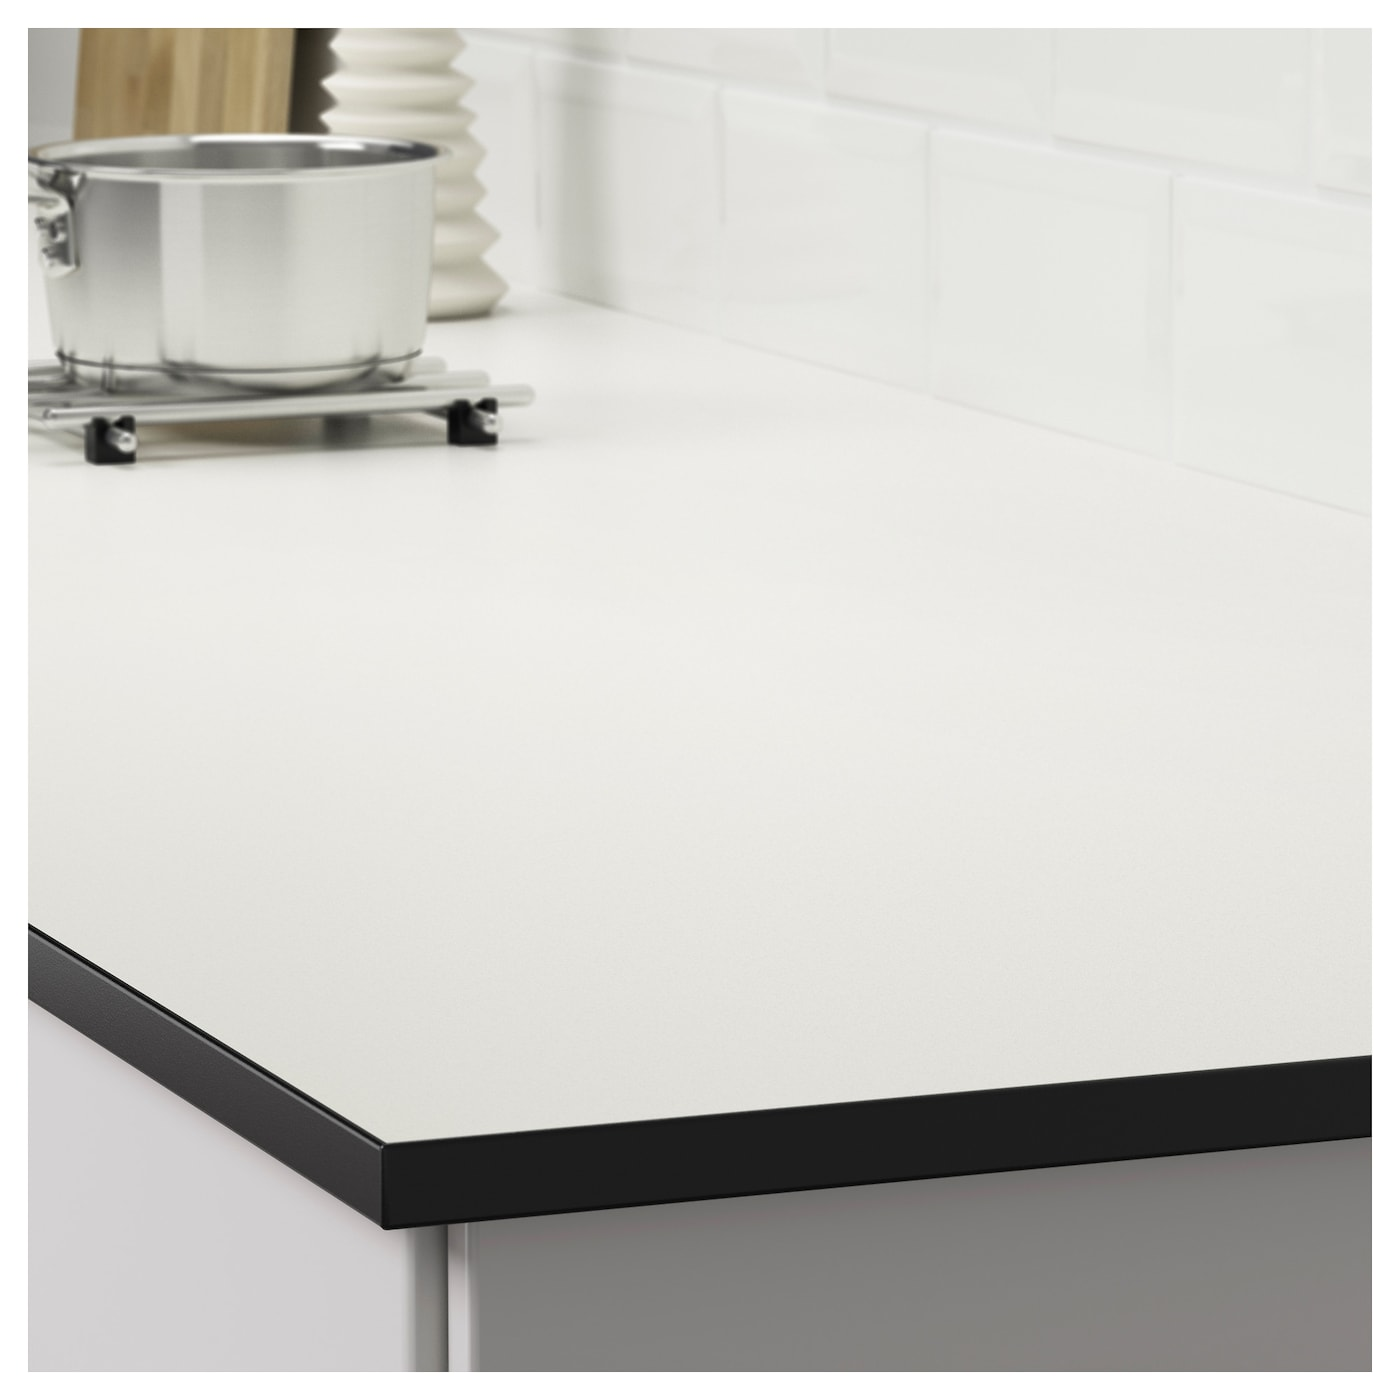 IKEA GOTTSKÄR worktop, double-sided